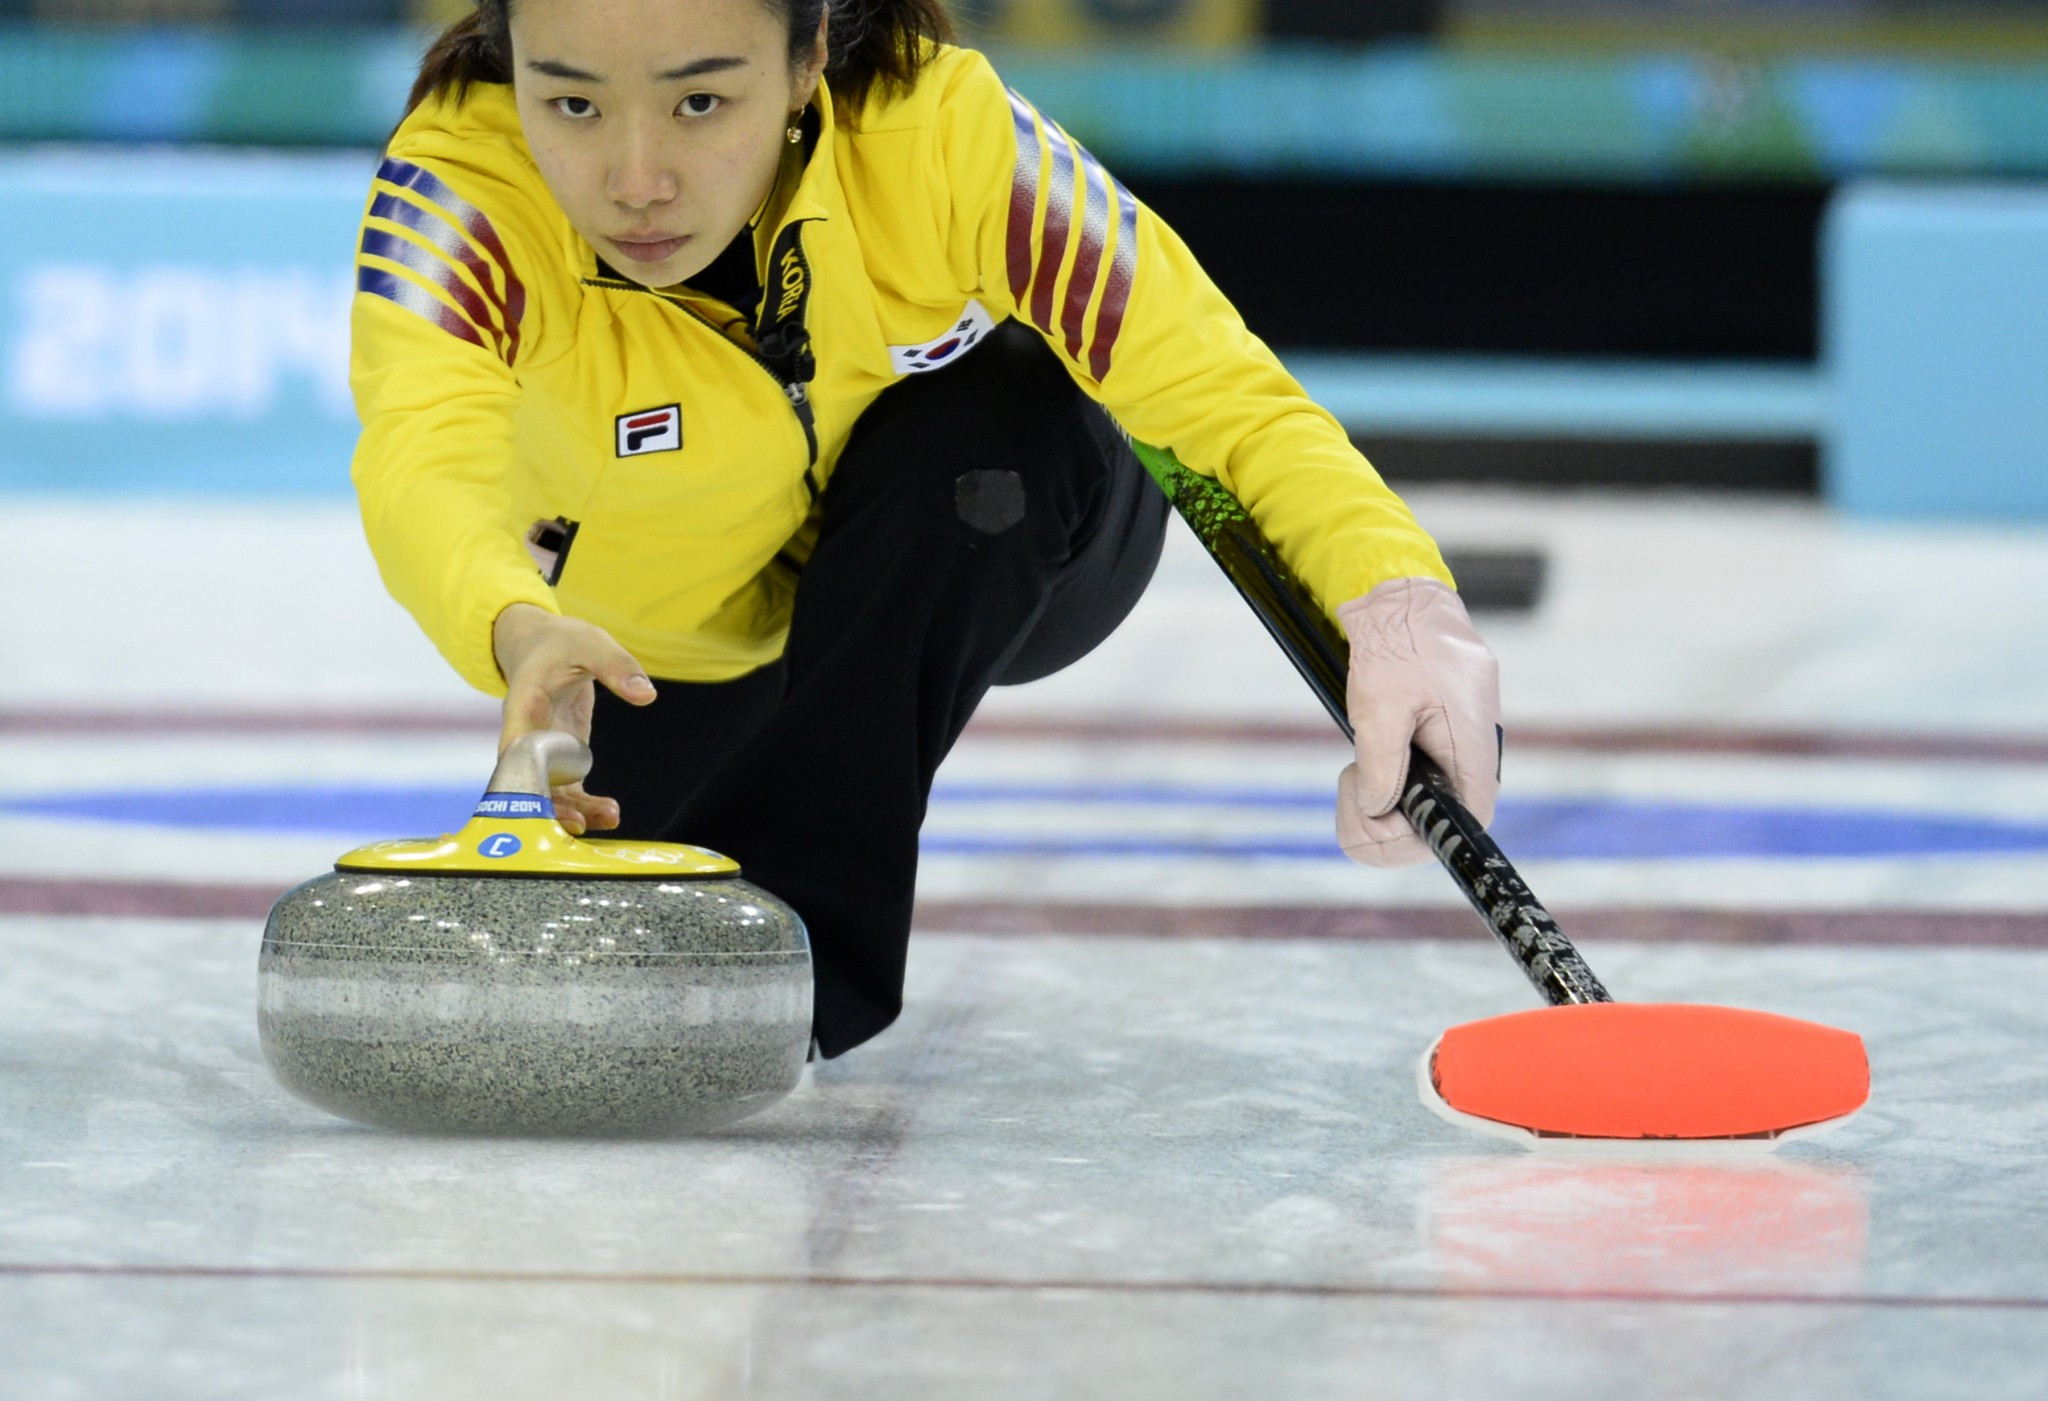 South Korean curlers aim for medals at Pyeongchang 2018